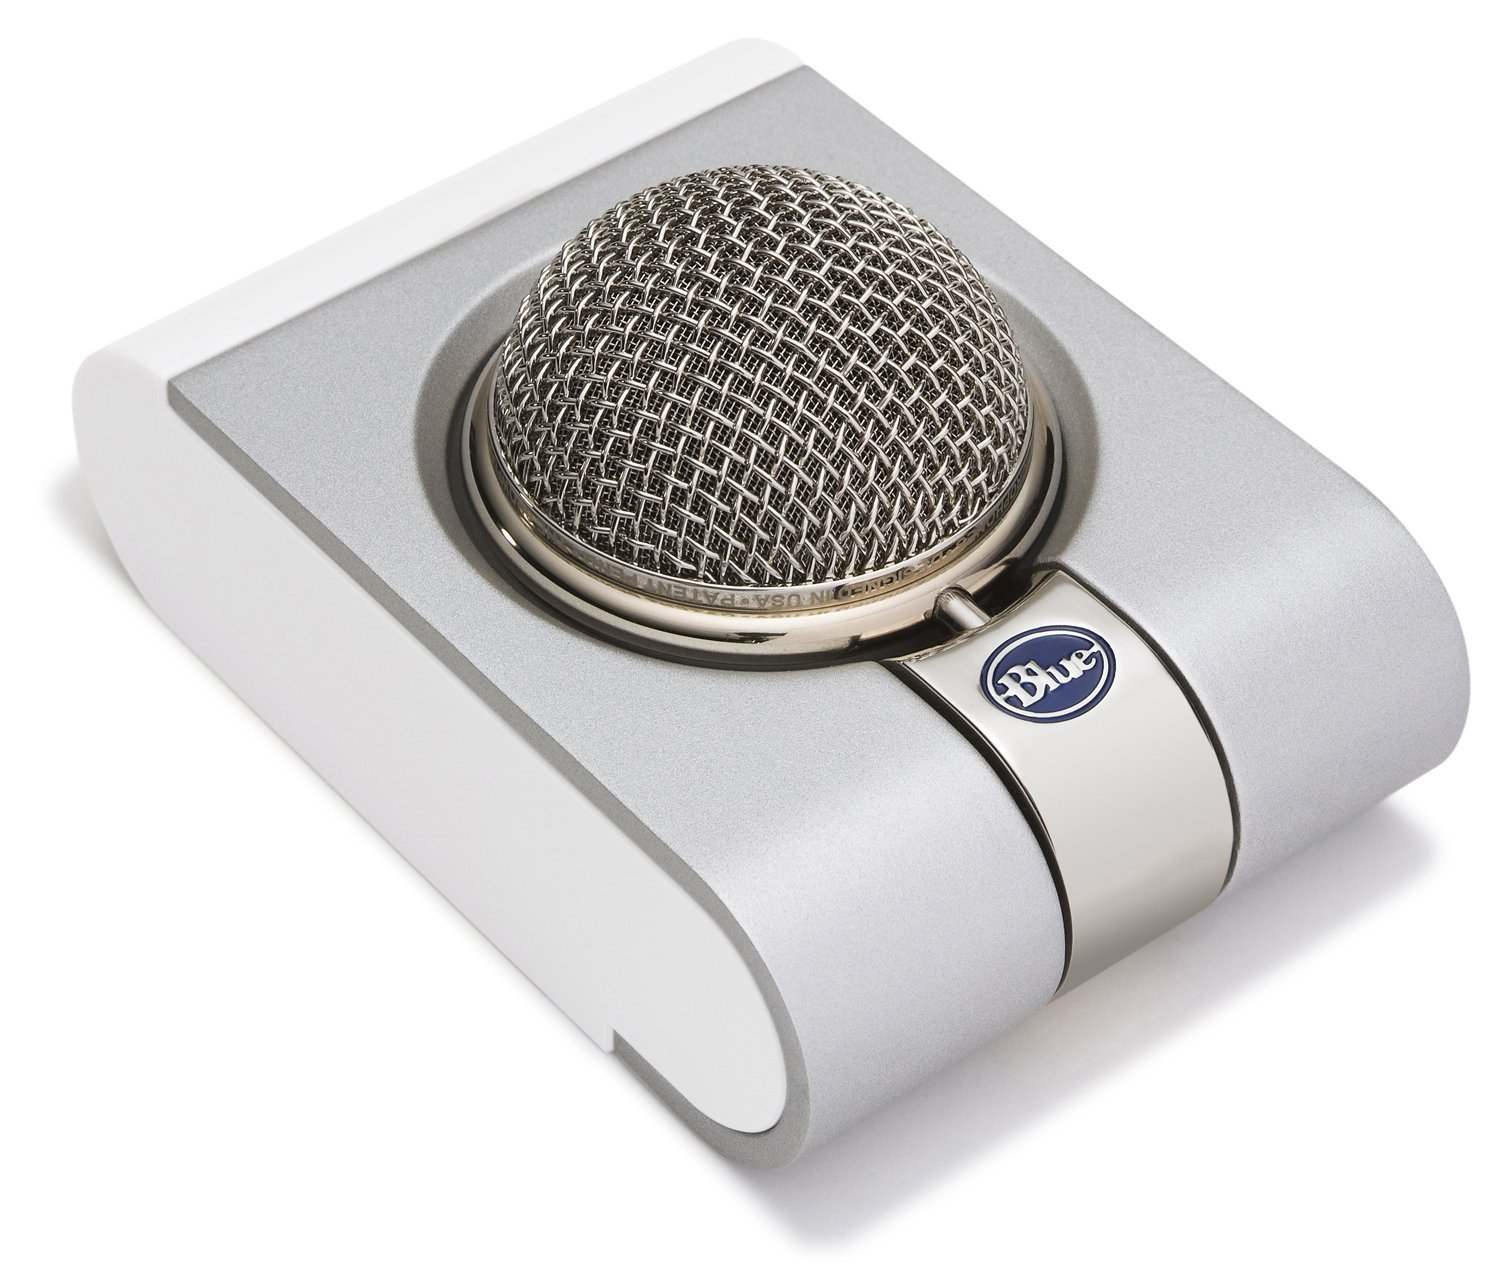 Blue Snowflake USB Microphone by Blue